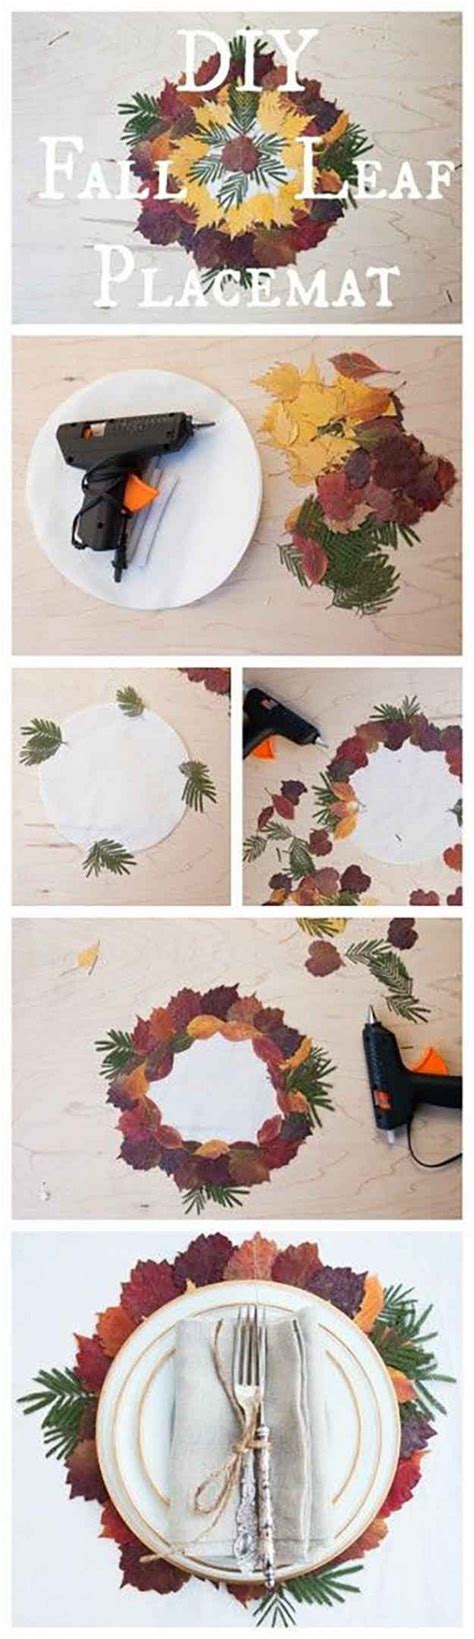 home made thanksgiving decorations thanksgiving decorations 14 diy placemat ideas